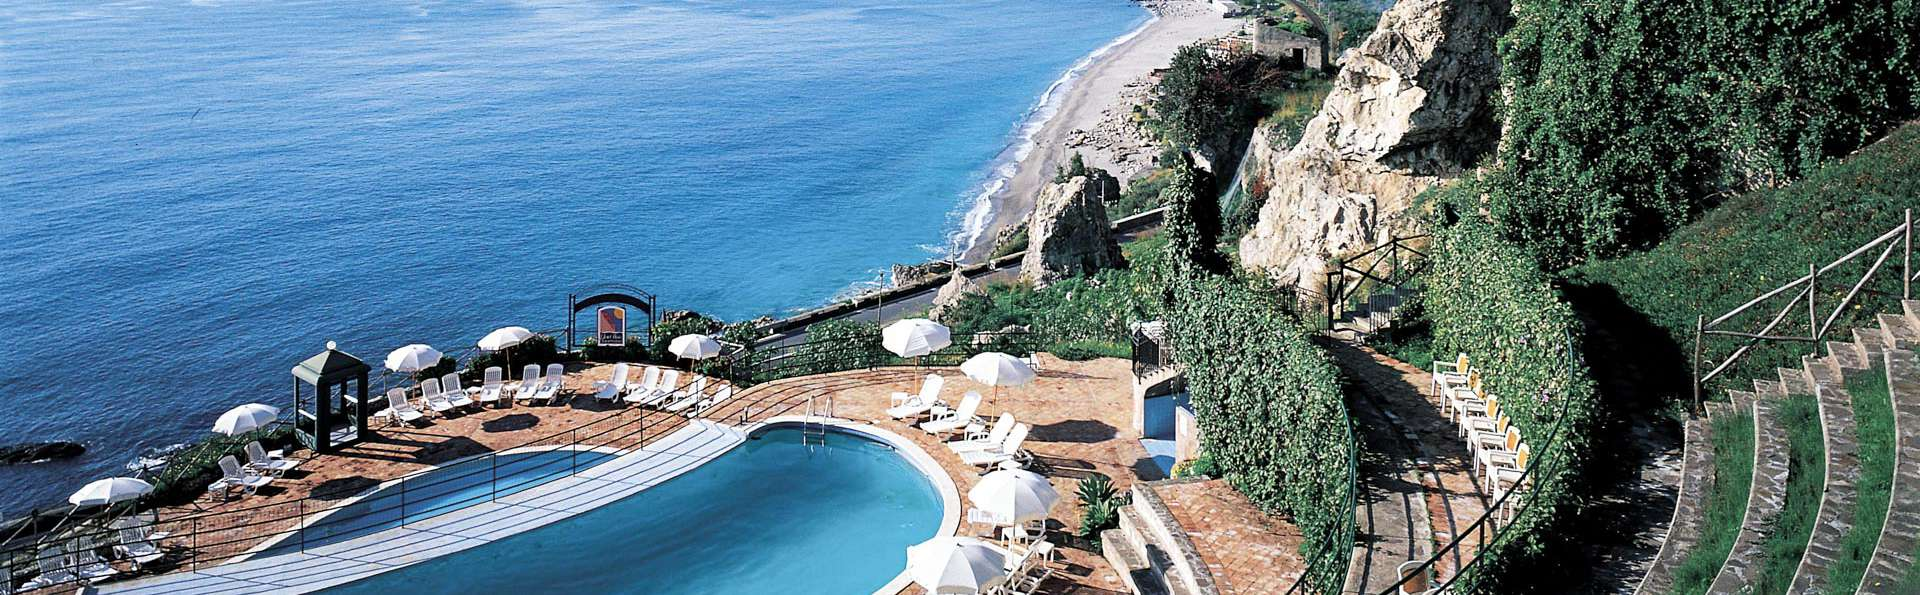 Baia Taormina Grand Palace Hotels & Spa - EDIT_POOL_02.jpg